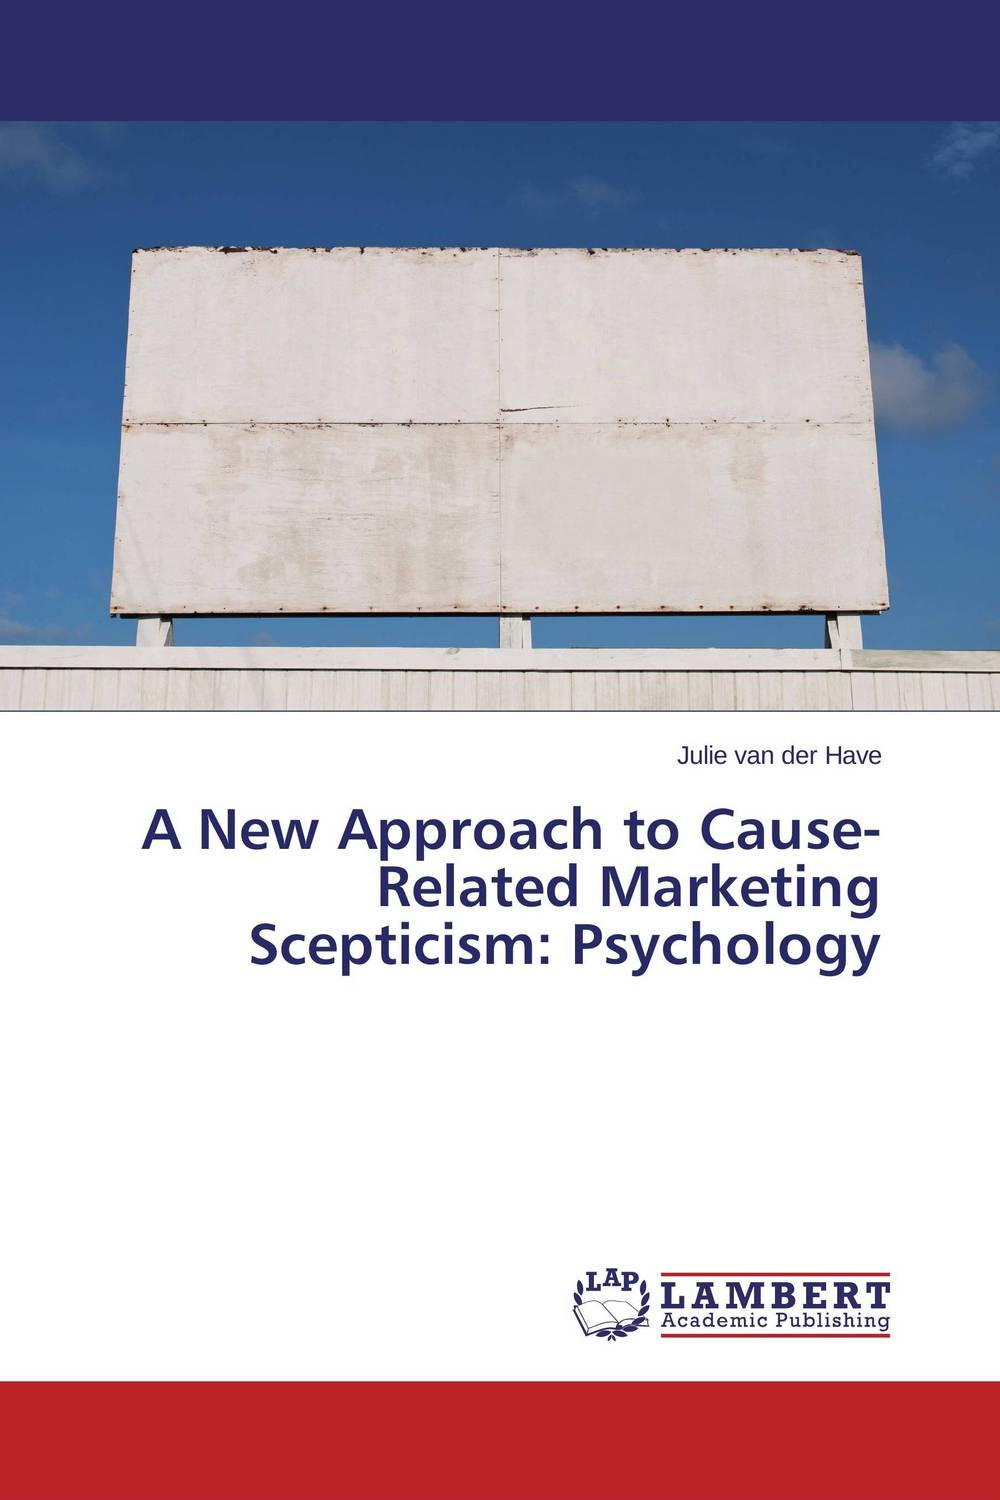 A New Approach to Cause-Related Marketing Scepticism: Psychology